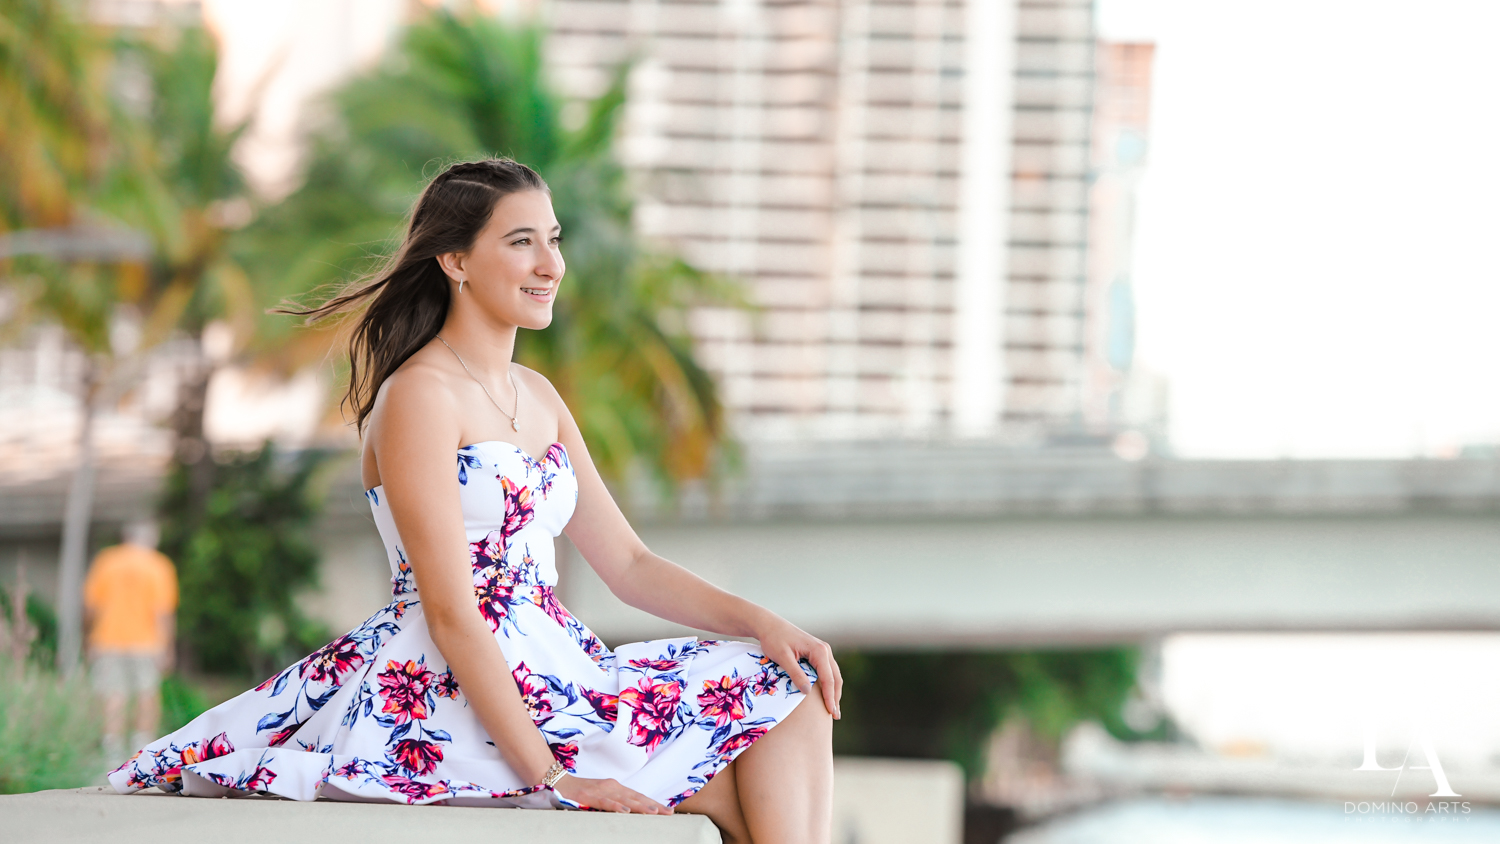 portraits at Fire & Ice B'Nai Mitzvah at Perez Art Museum Miami by Domino Arts Photography